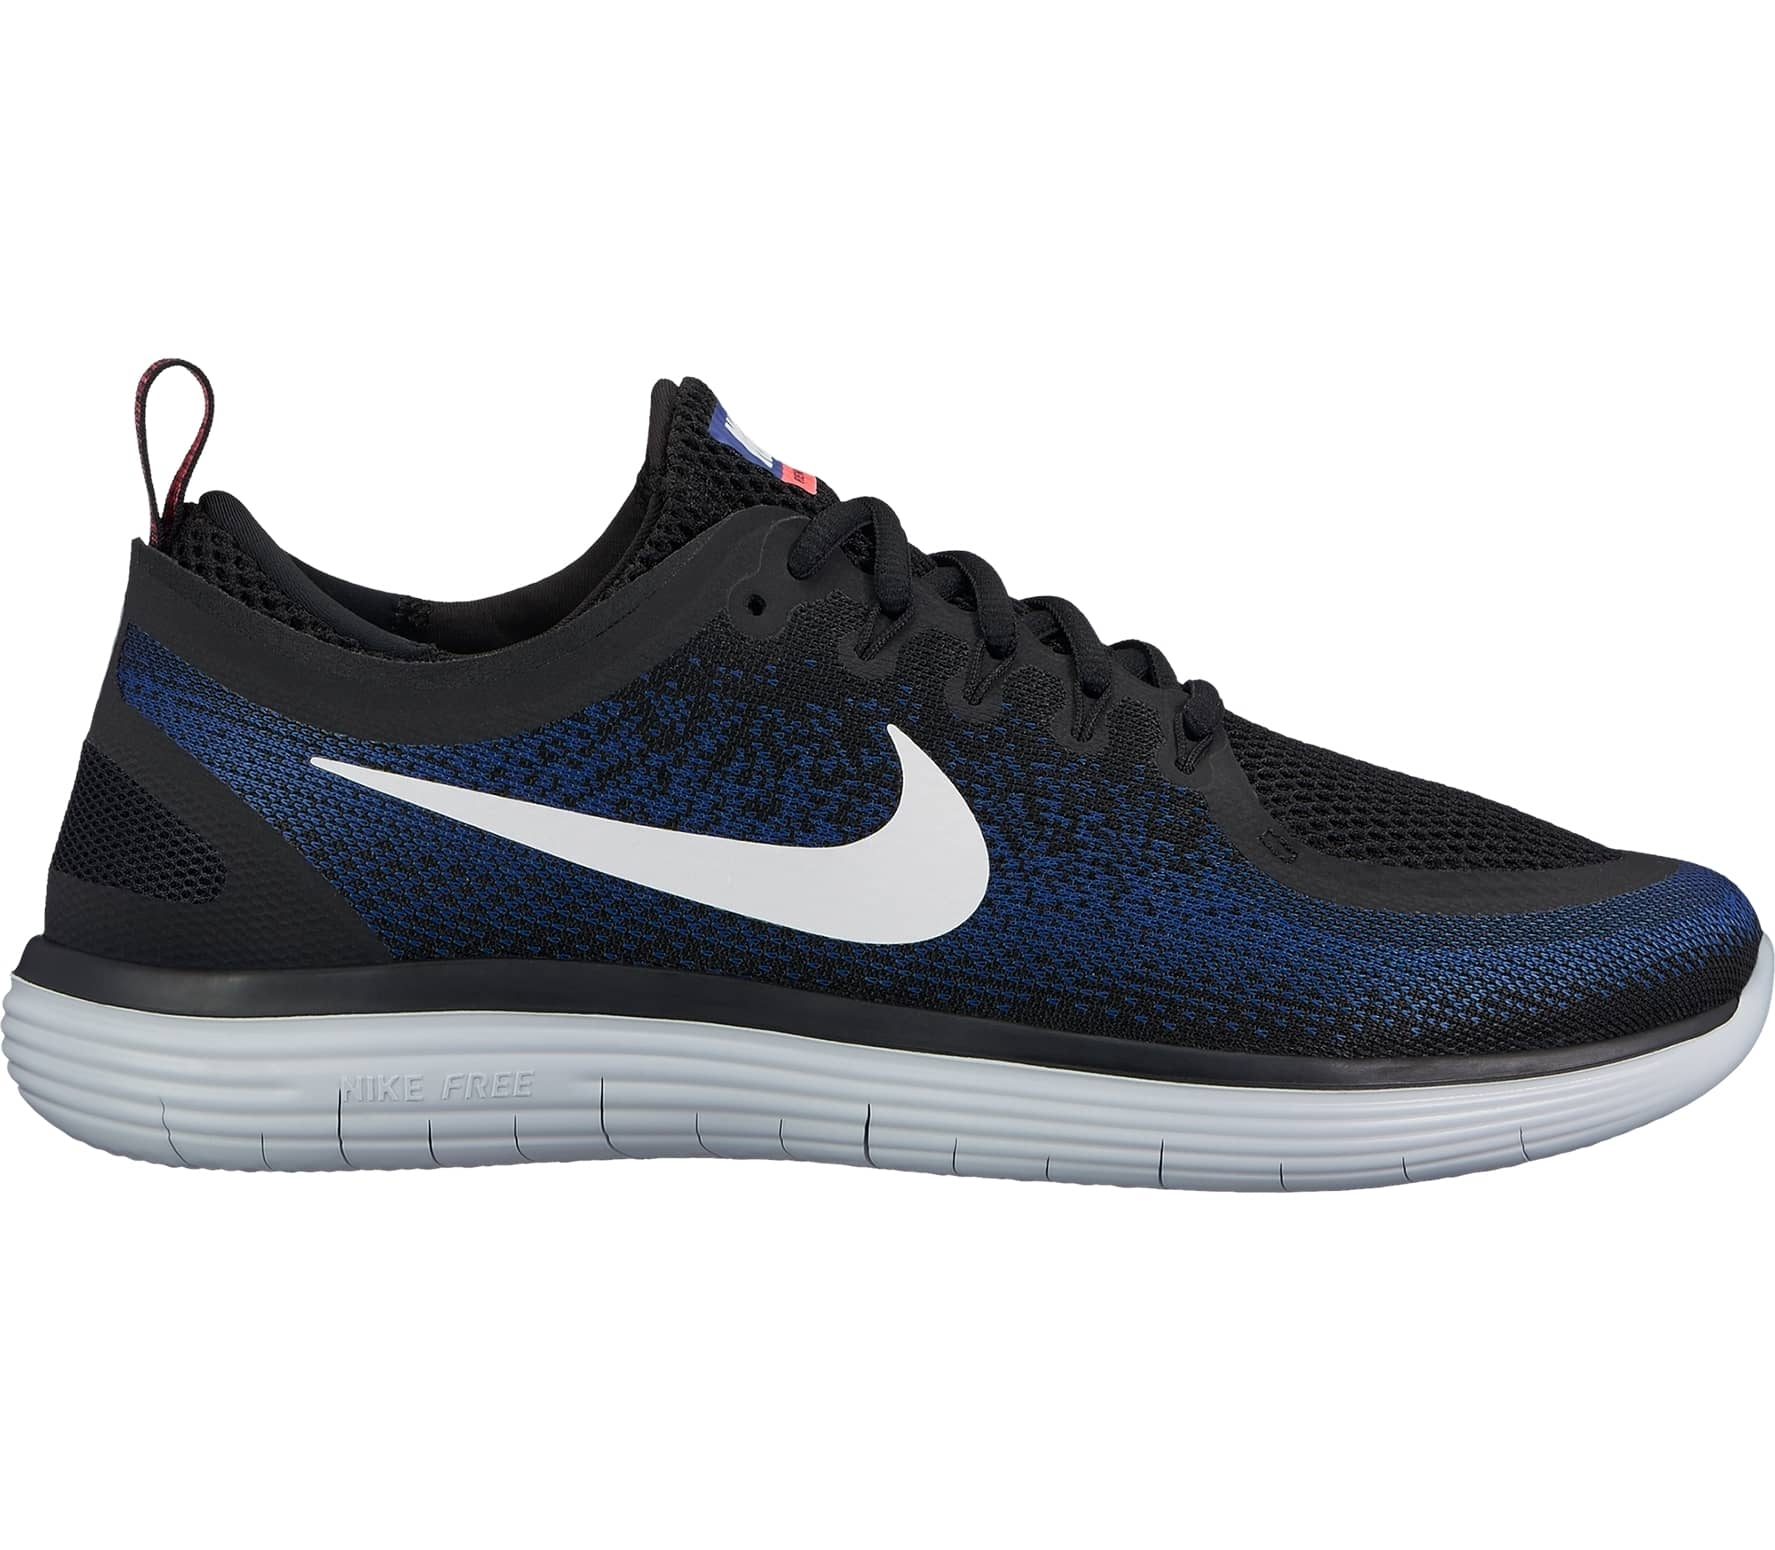 on sale 3ec6d 58cfd Nike Free RN Distance 2 Men